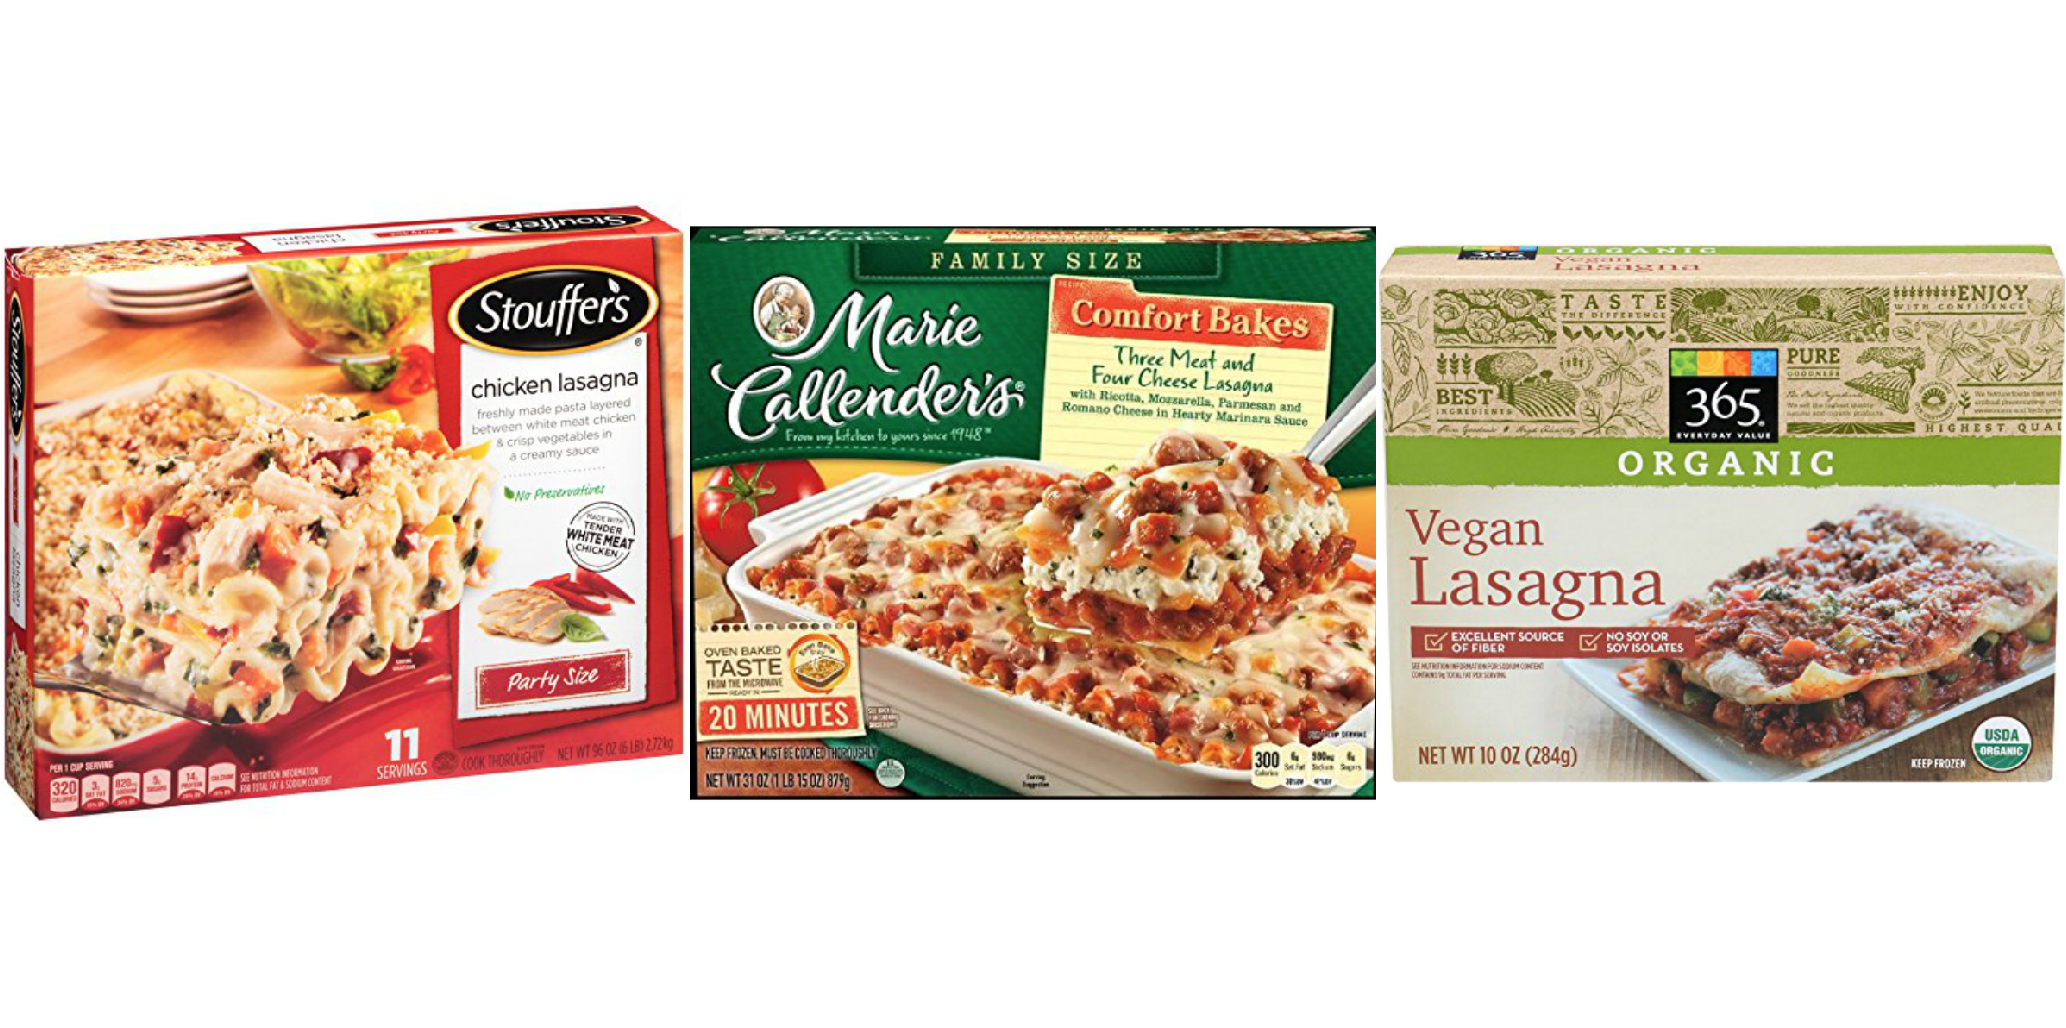 10 Best Frozen Lasagna Brands 2017 Frozen Lasagnas To Buydelishcom